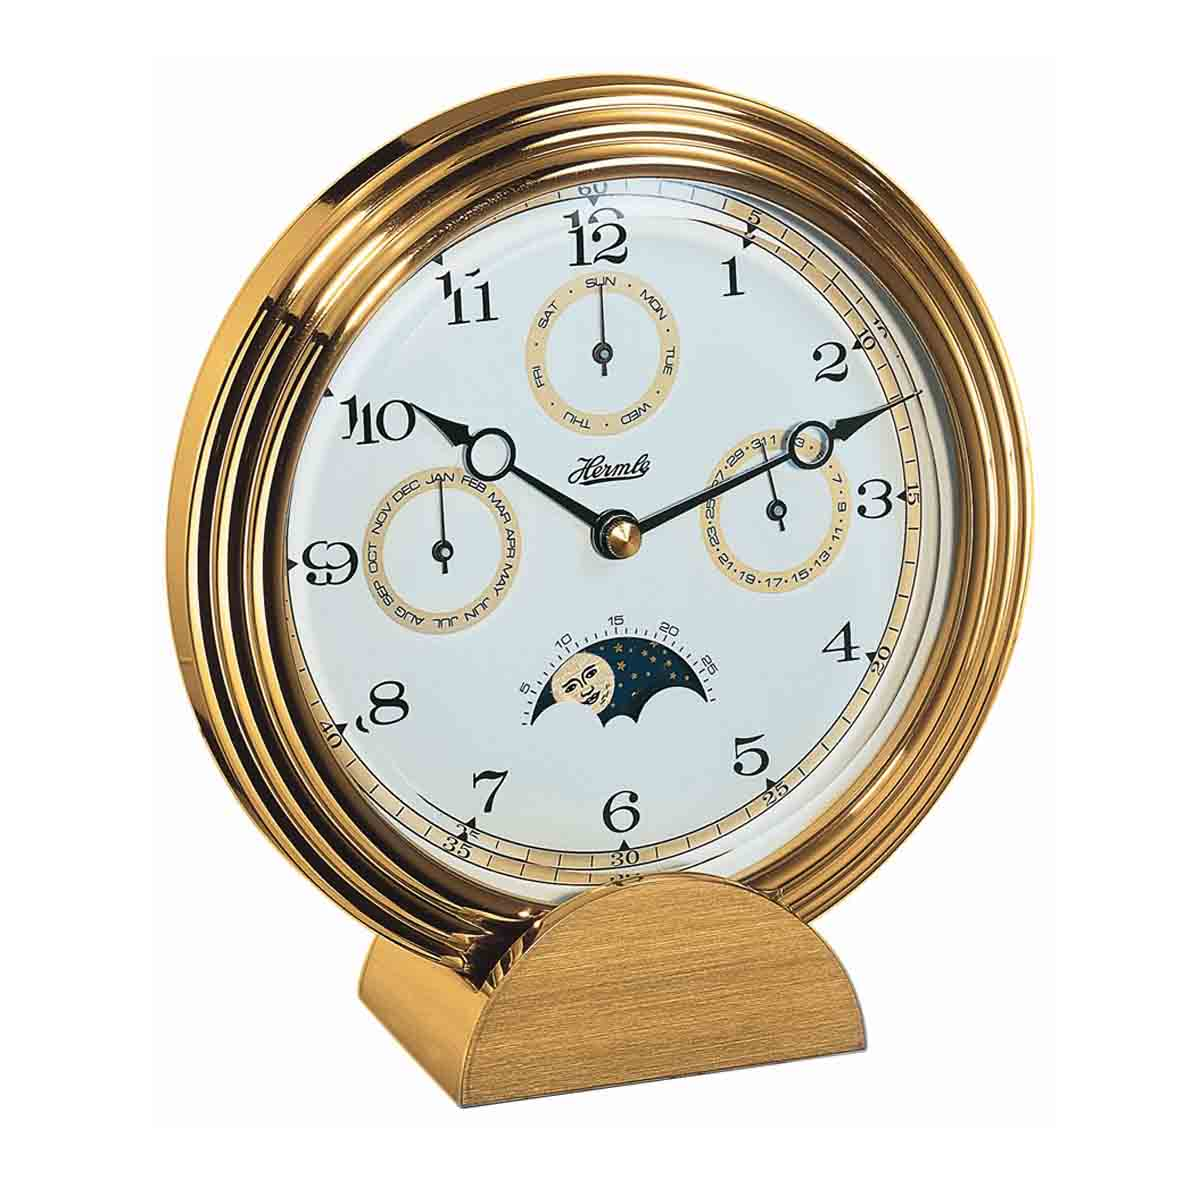 STOCKTON 22641 002100 Brass Mantel Table Clock